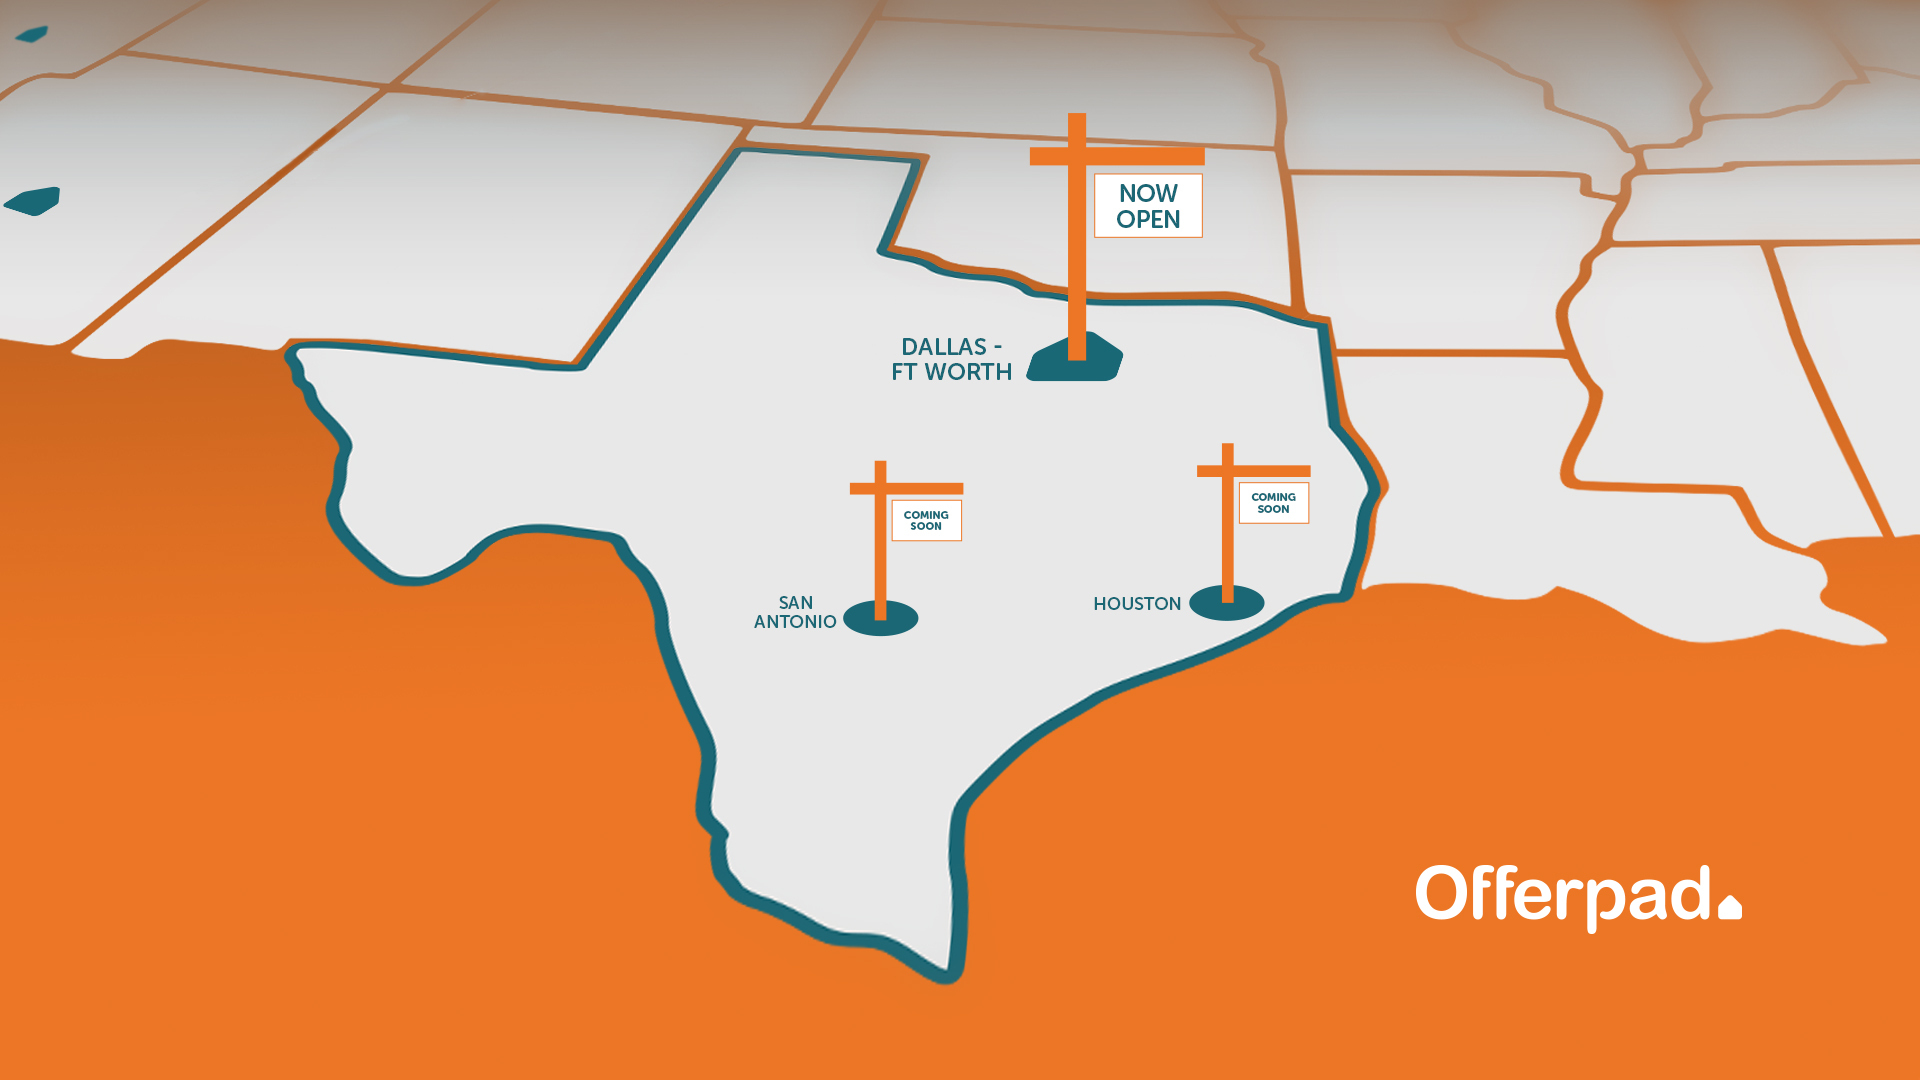 hight resolution of offerpad is now open in dallas fort worth additional texas launches announced business wire